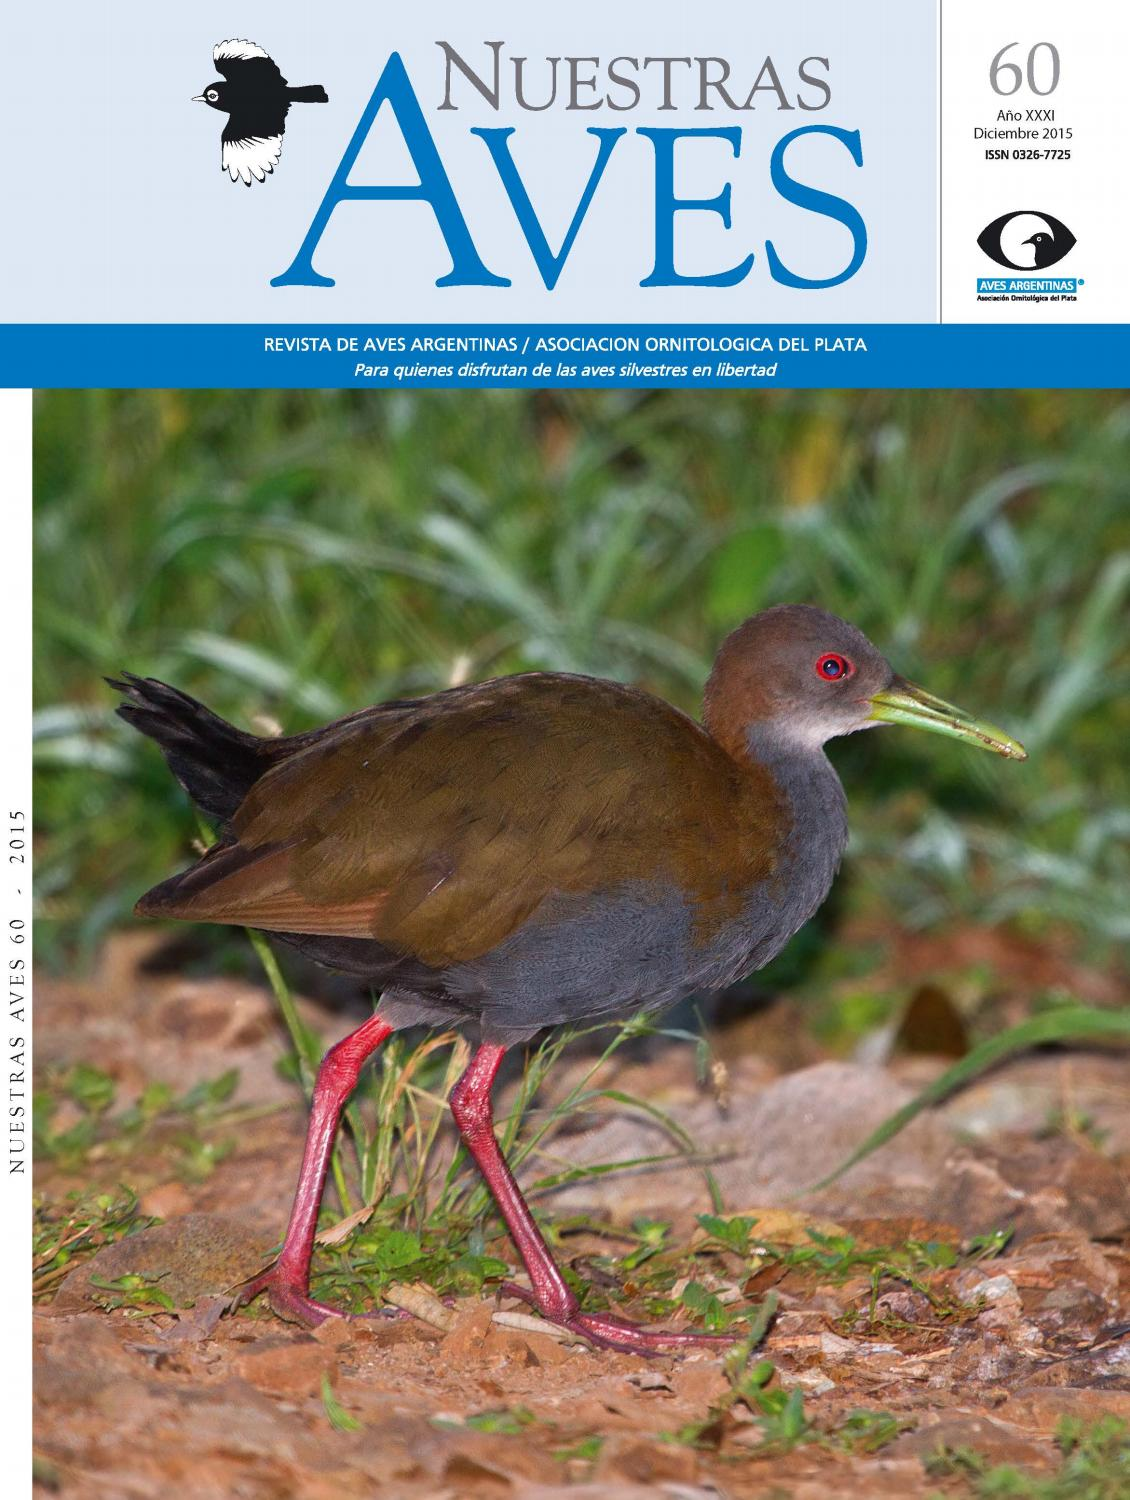 Revista nuestras aves n60 by Aves Argentinas - issuu